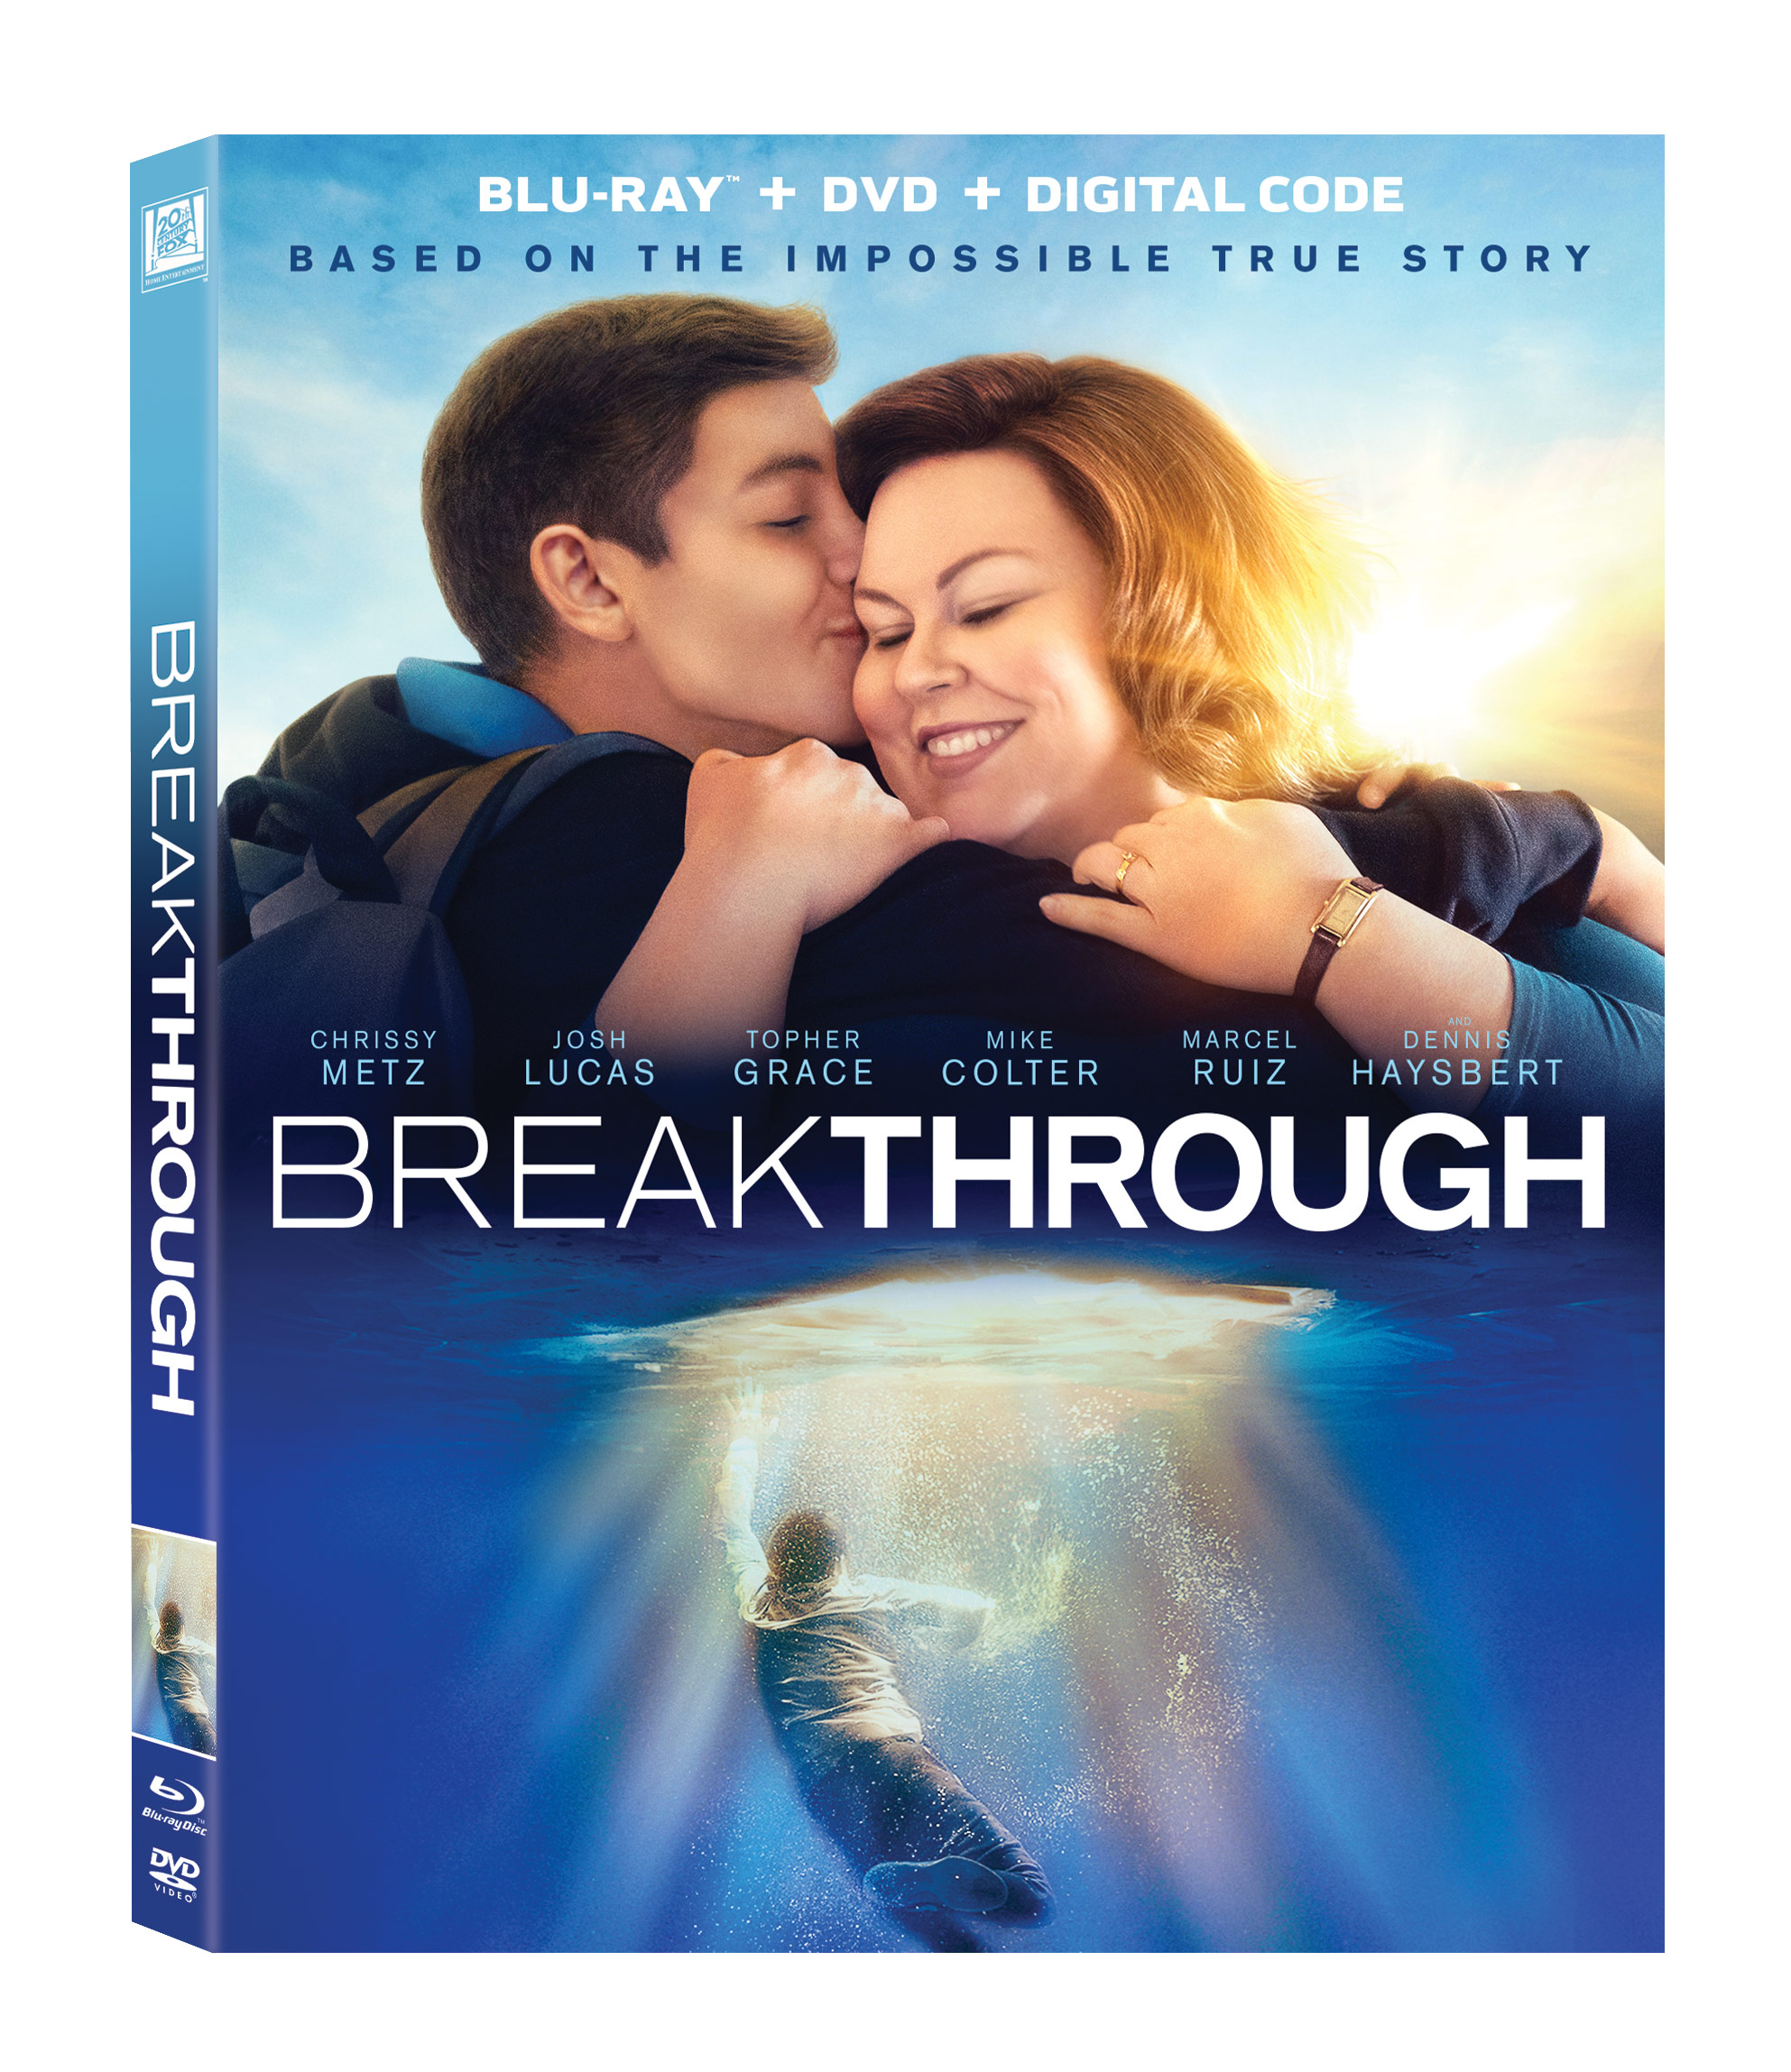 BreakThrough Blu-ray Review